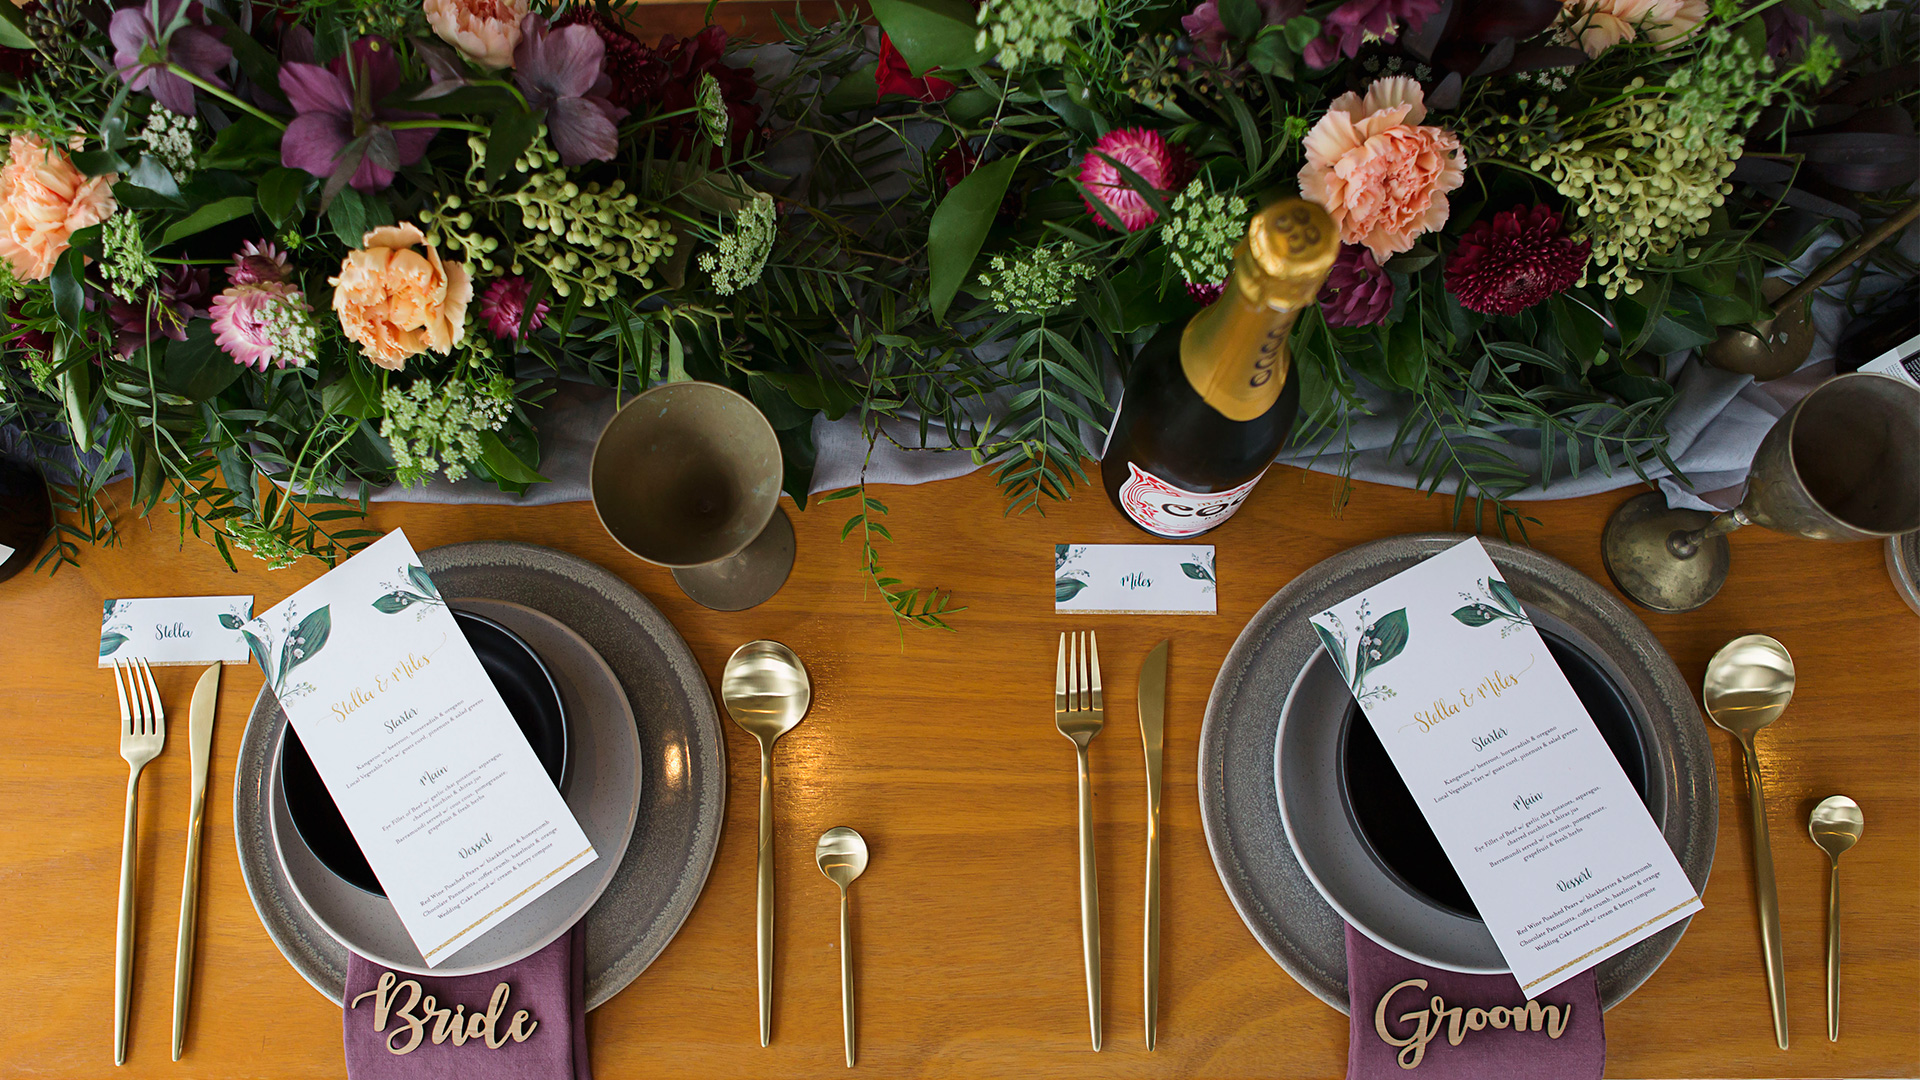 Little Red Fox Eatery wedding menu and place cards